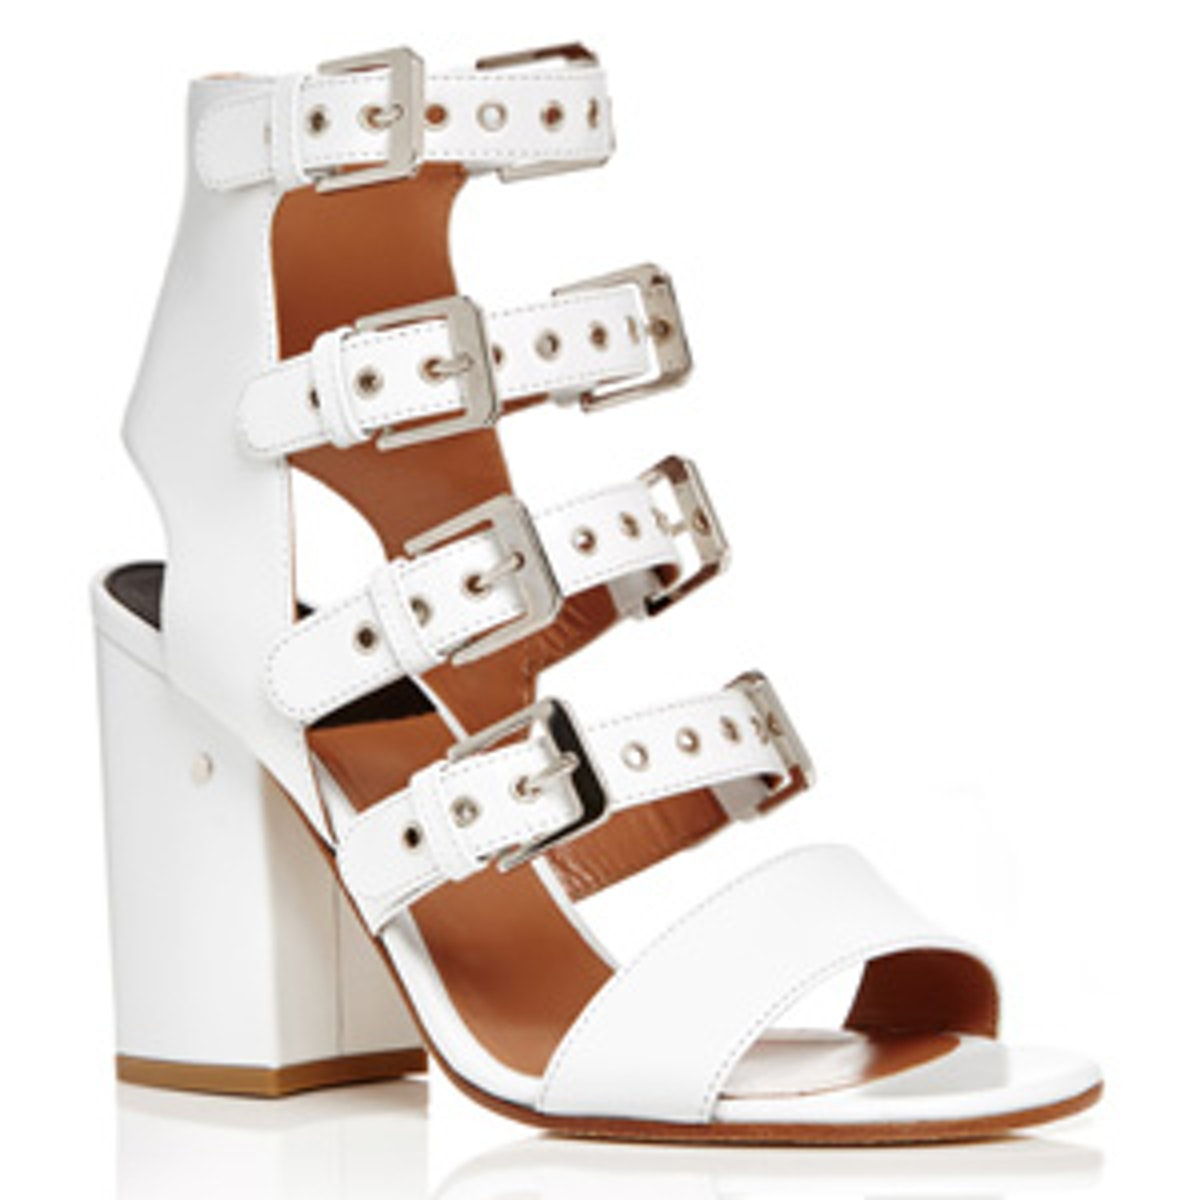 Kloe White Calf Leather Buckle Strap Sandals